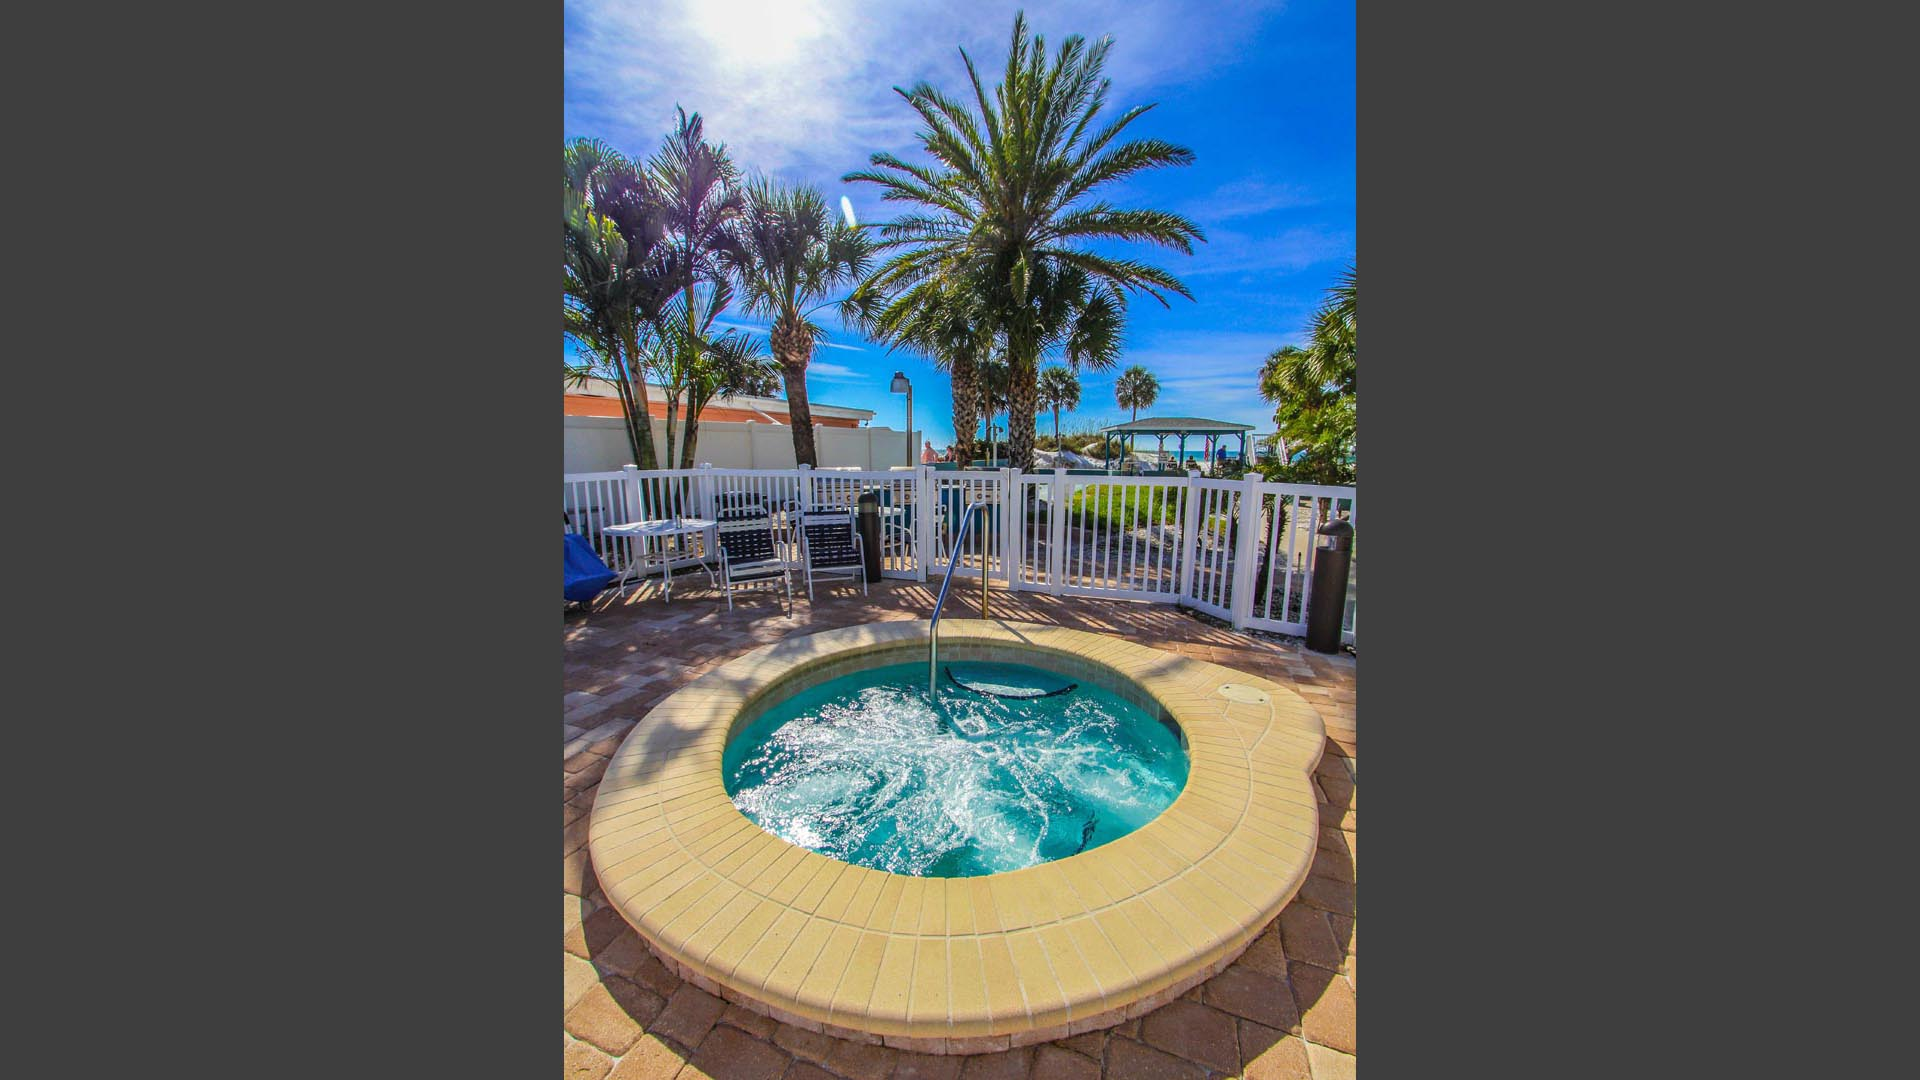 A relaxing Jacuzzi tub at VRI's Mariner Beach Club in St. Pete Beach, Florida.